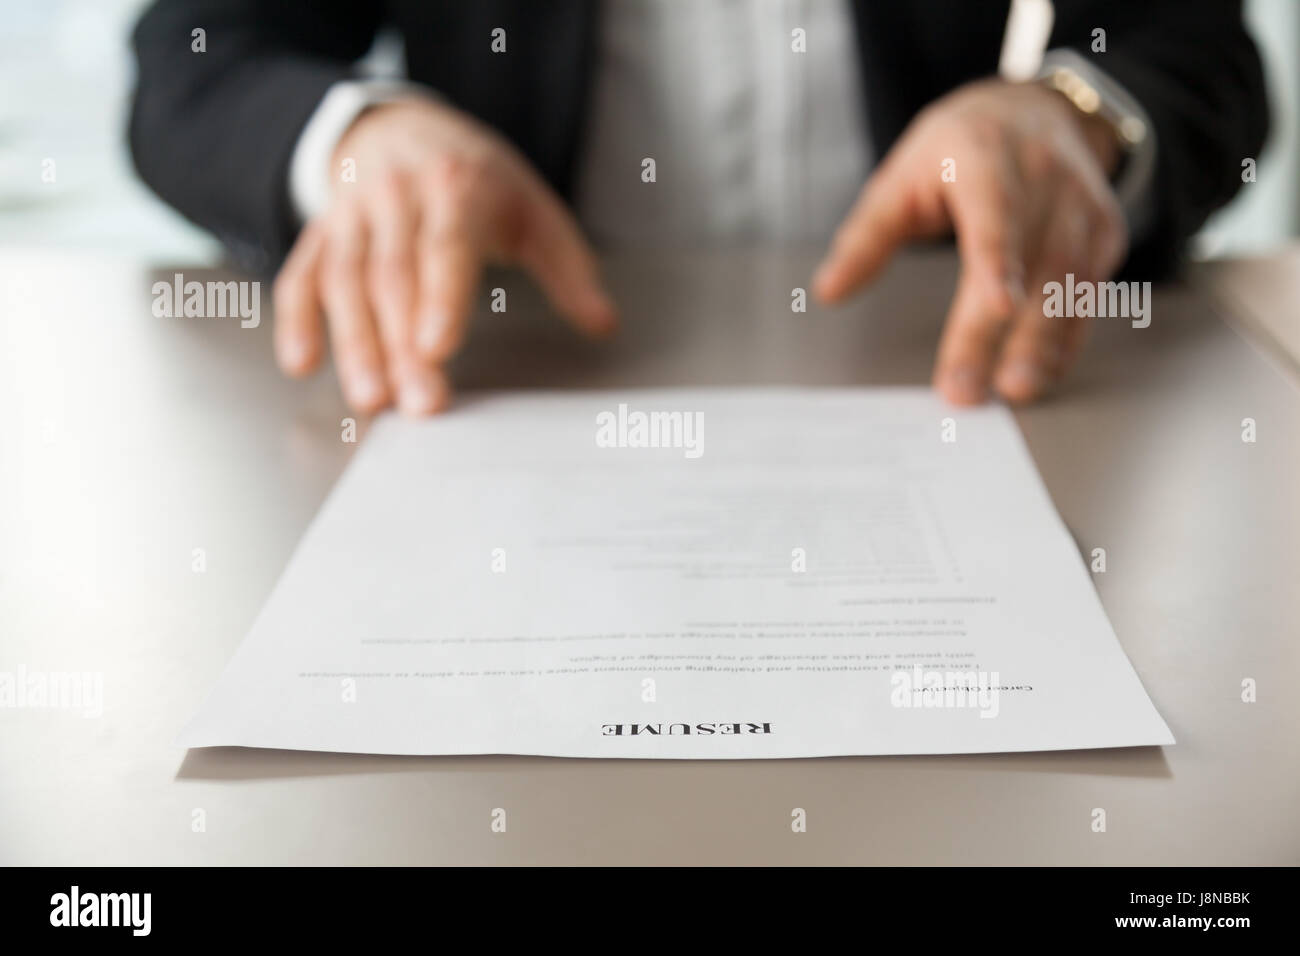 Resume document with guys hands in background. Recruitment manager reads resume. Job applicant offers CV to recruiter - Stock Image